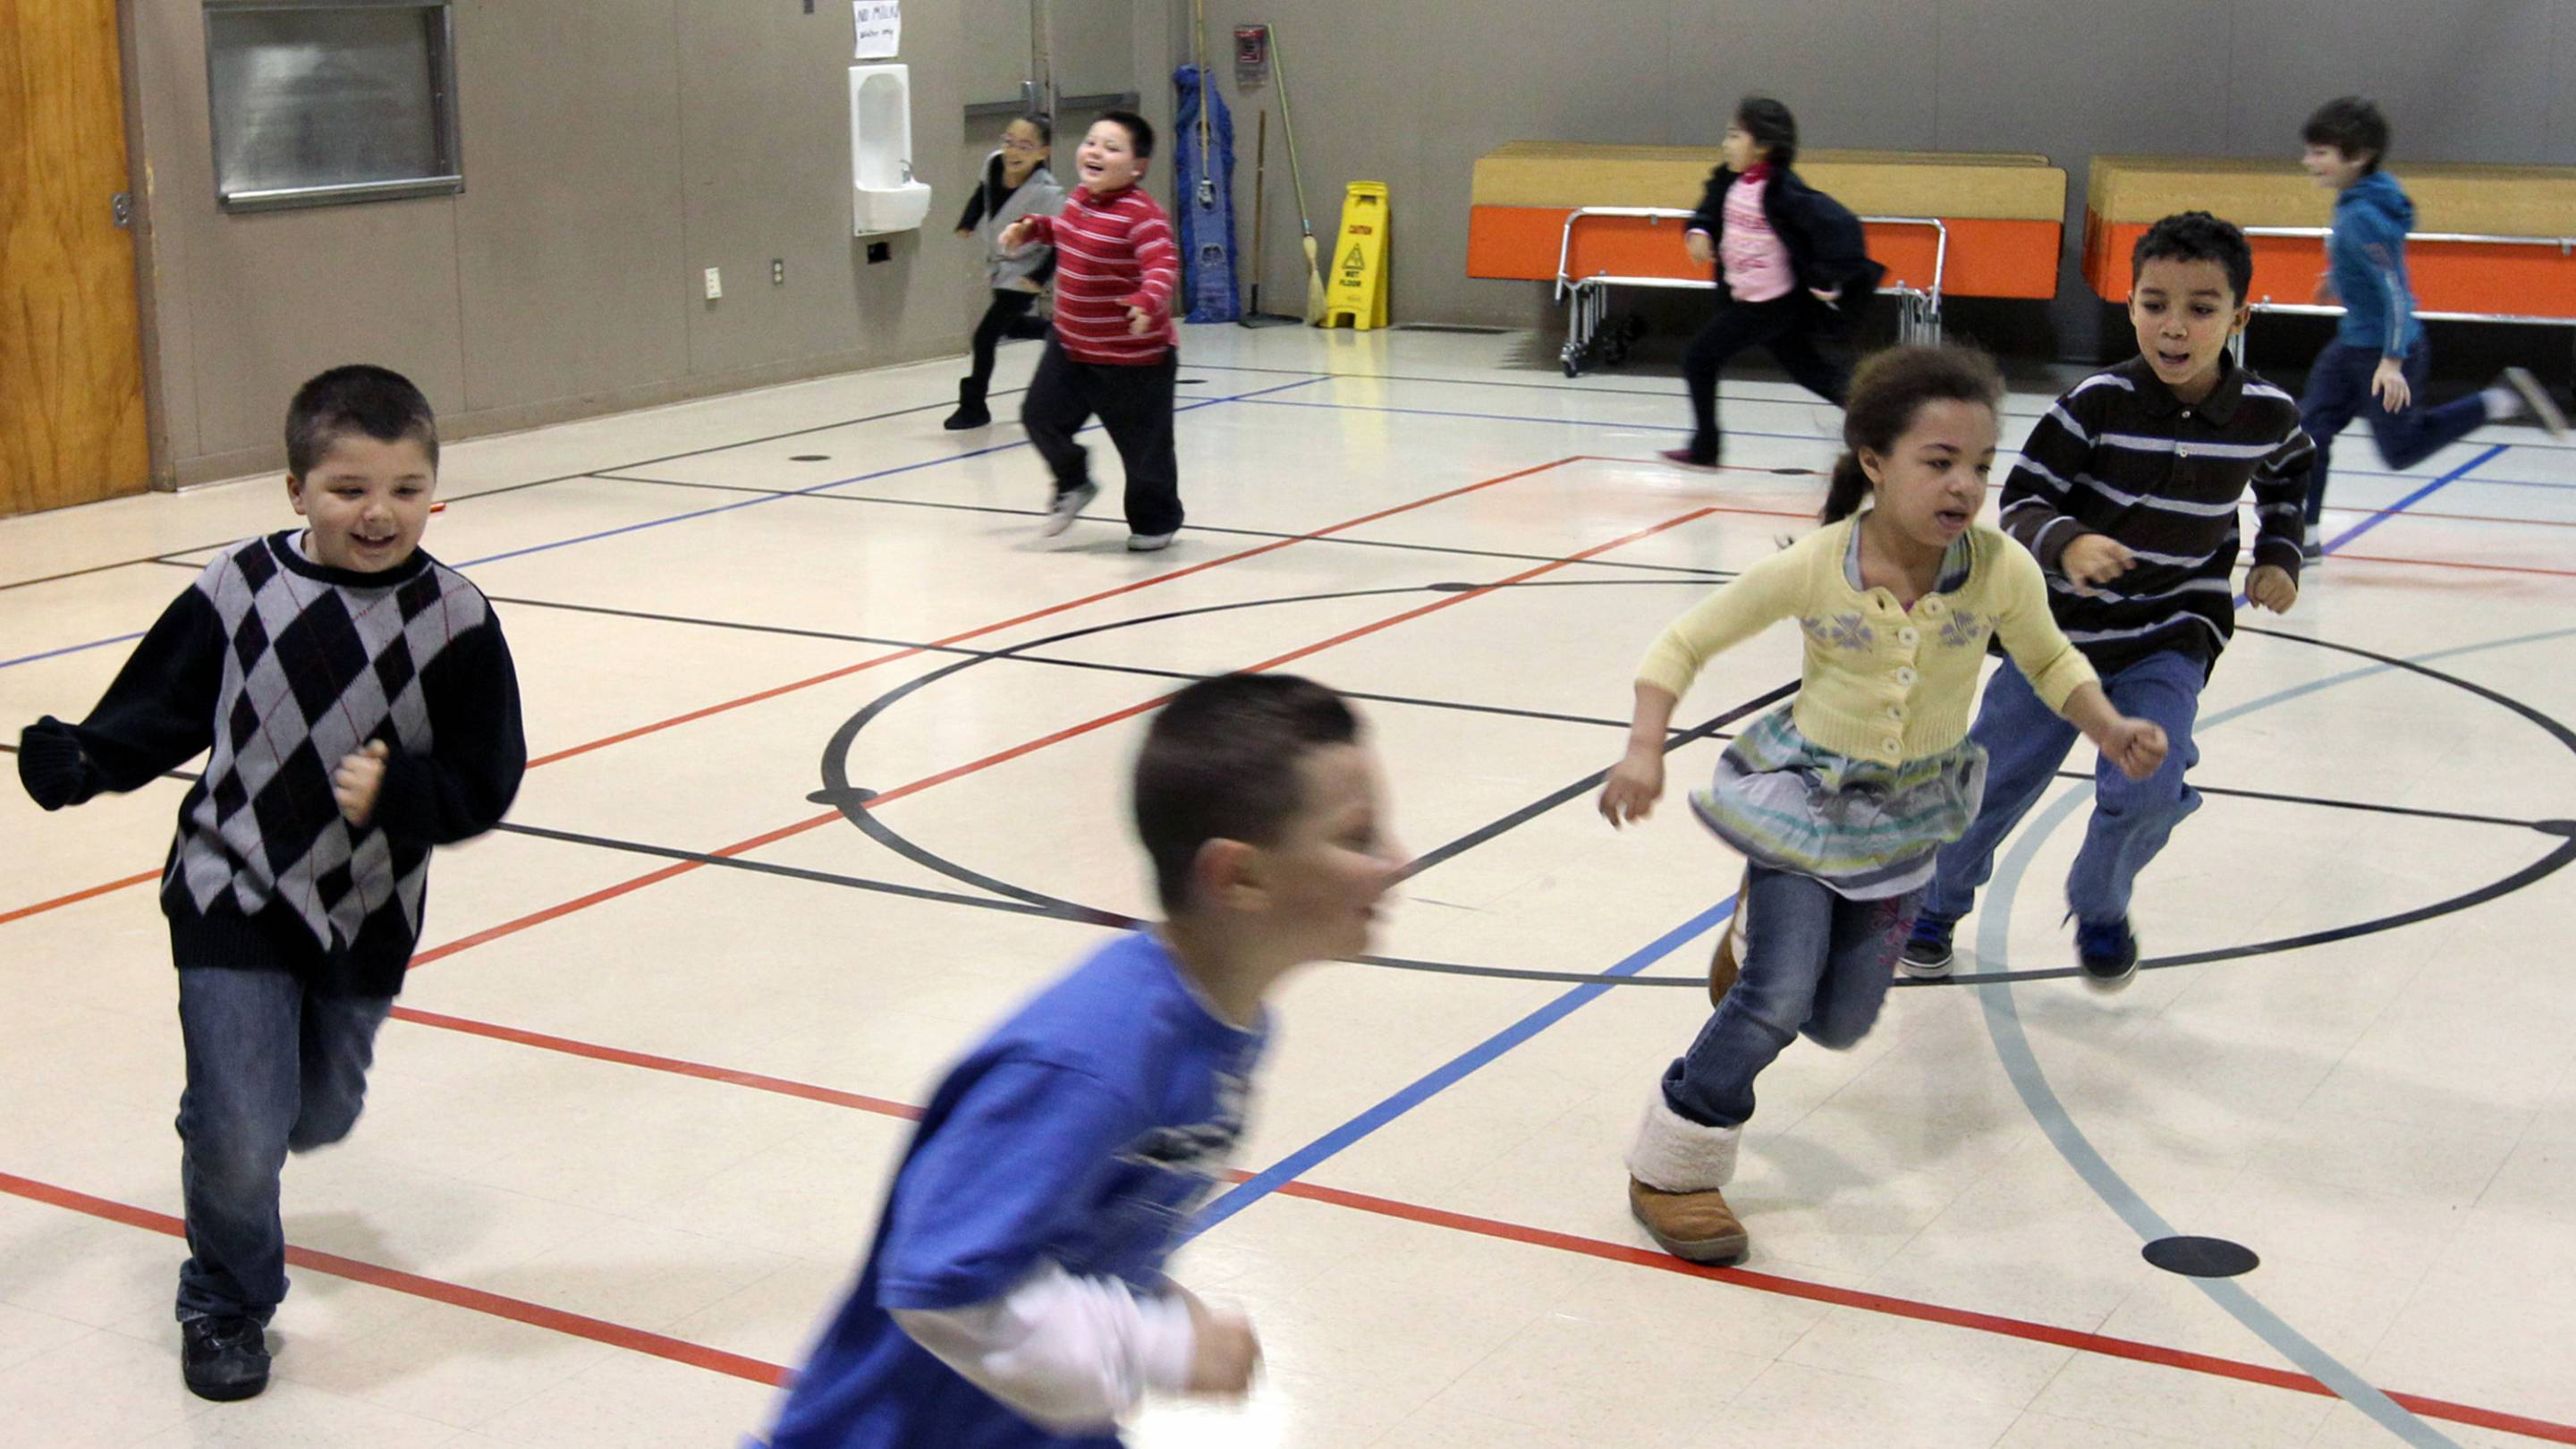 Second graders at Brookdale Elementary School run laps around the gym during a physical education class in Parkland, Wash., on Jan. 3, 2012.